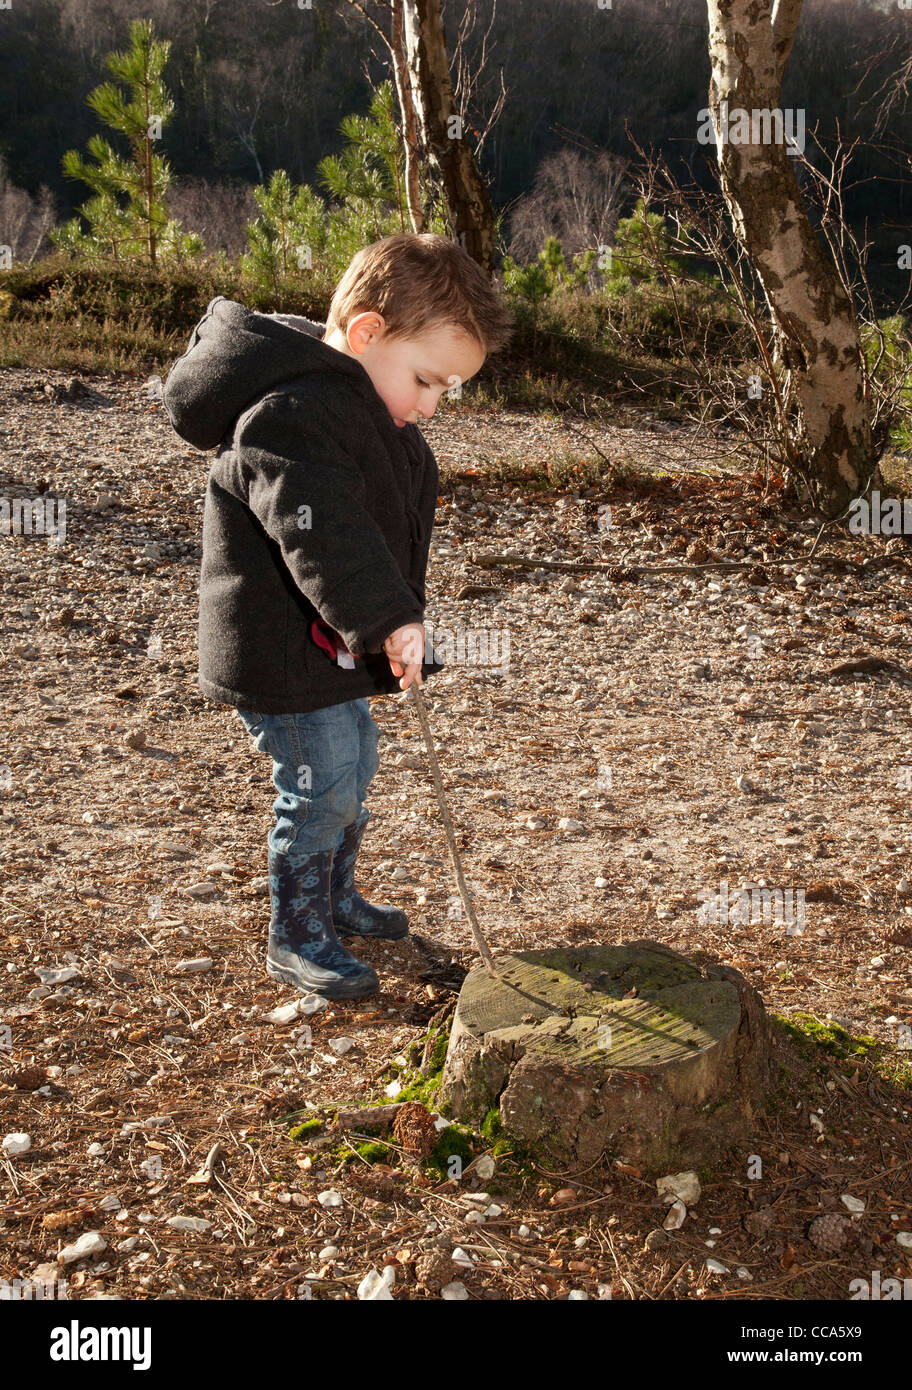 young boy playing with a stick learn by discovery and experience outside in the woods having fun - Stock Image